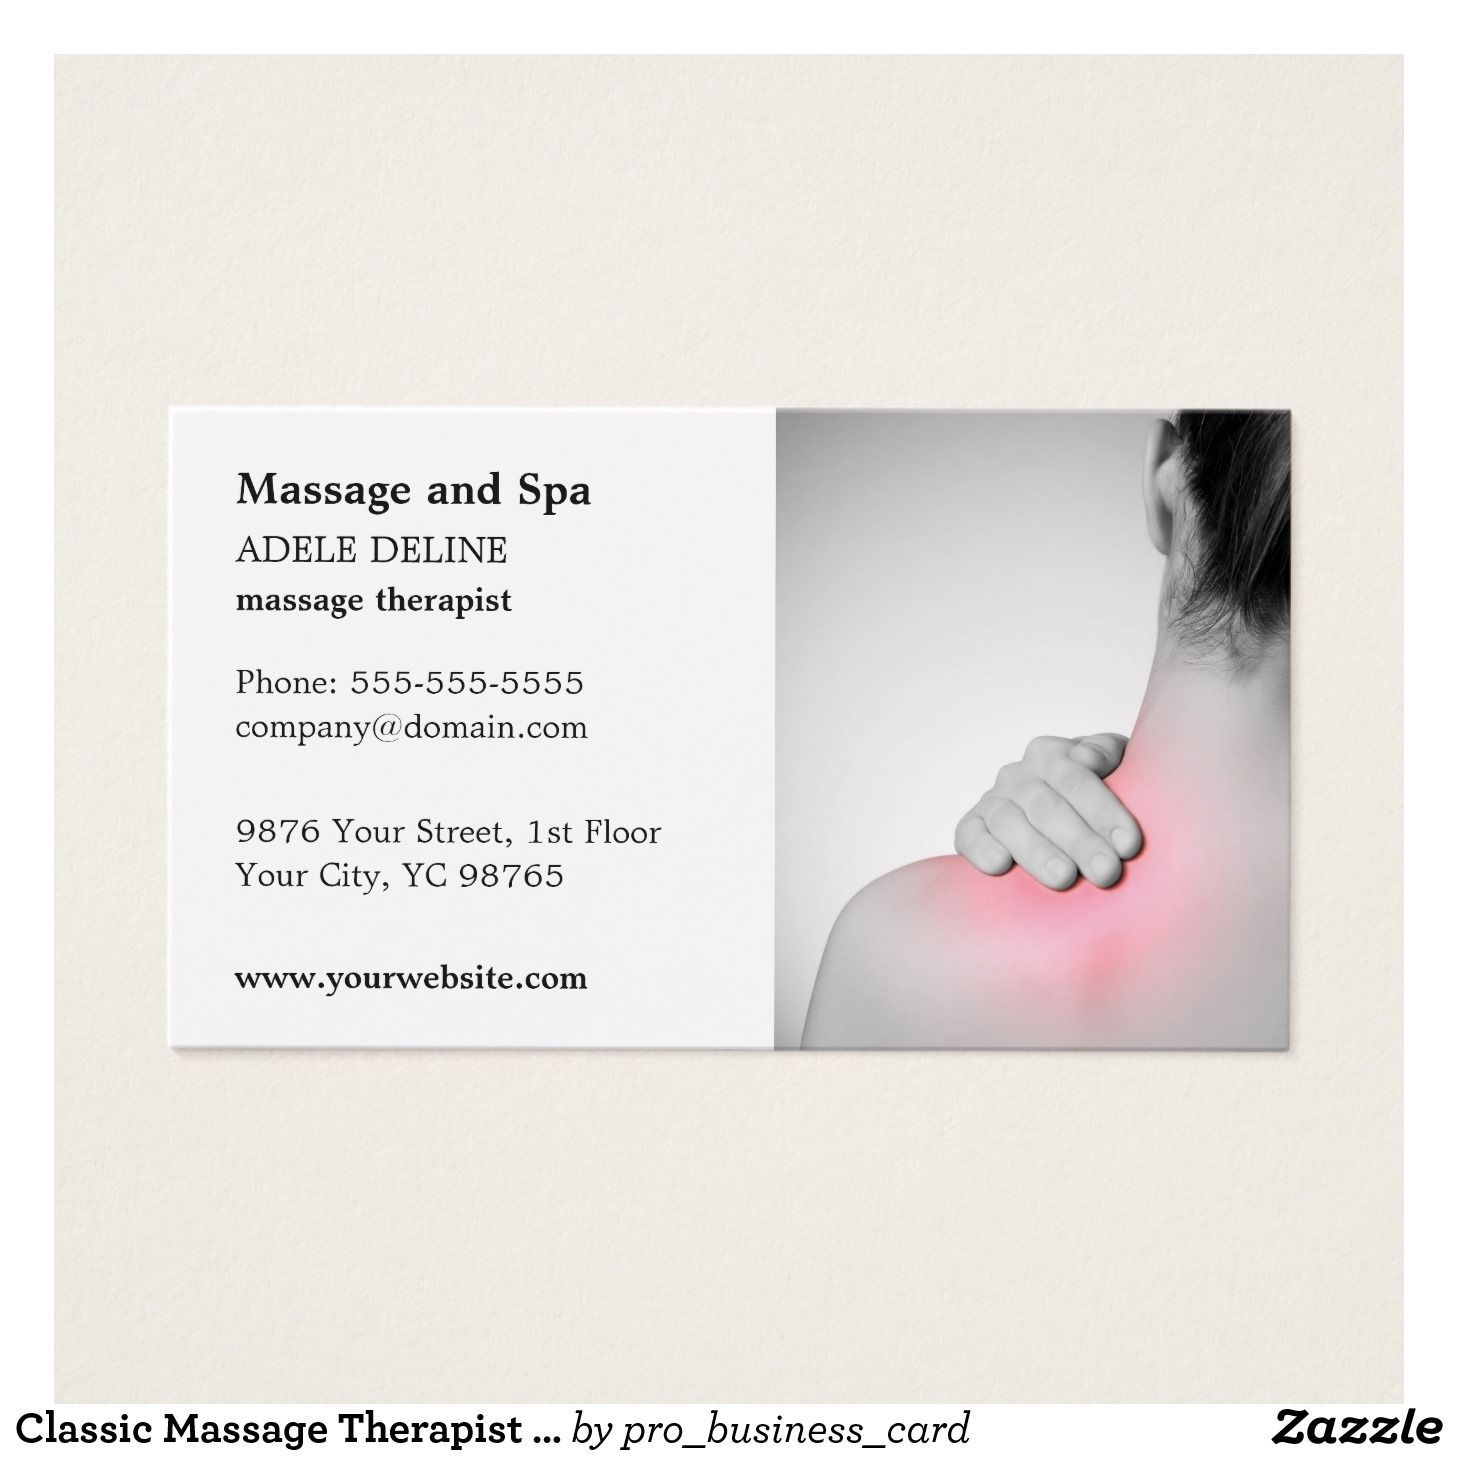 The marvellous Classic Massage Therapist Business Card